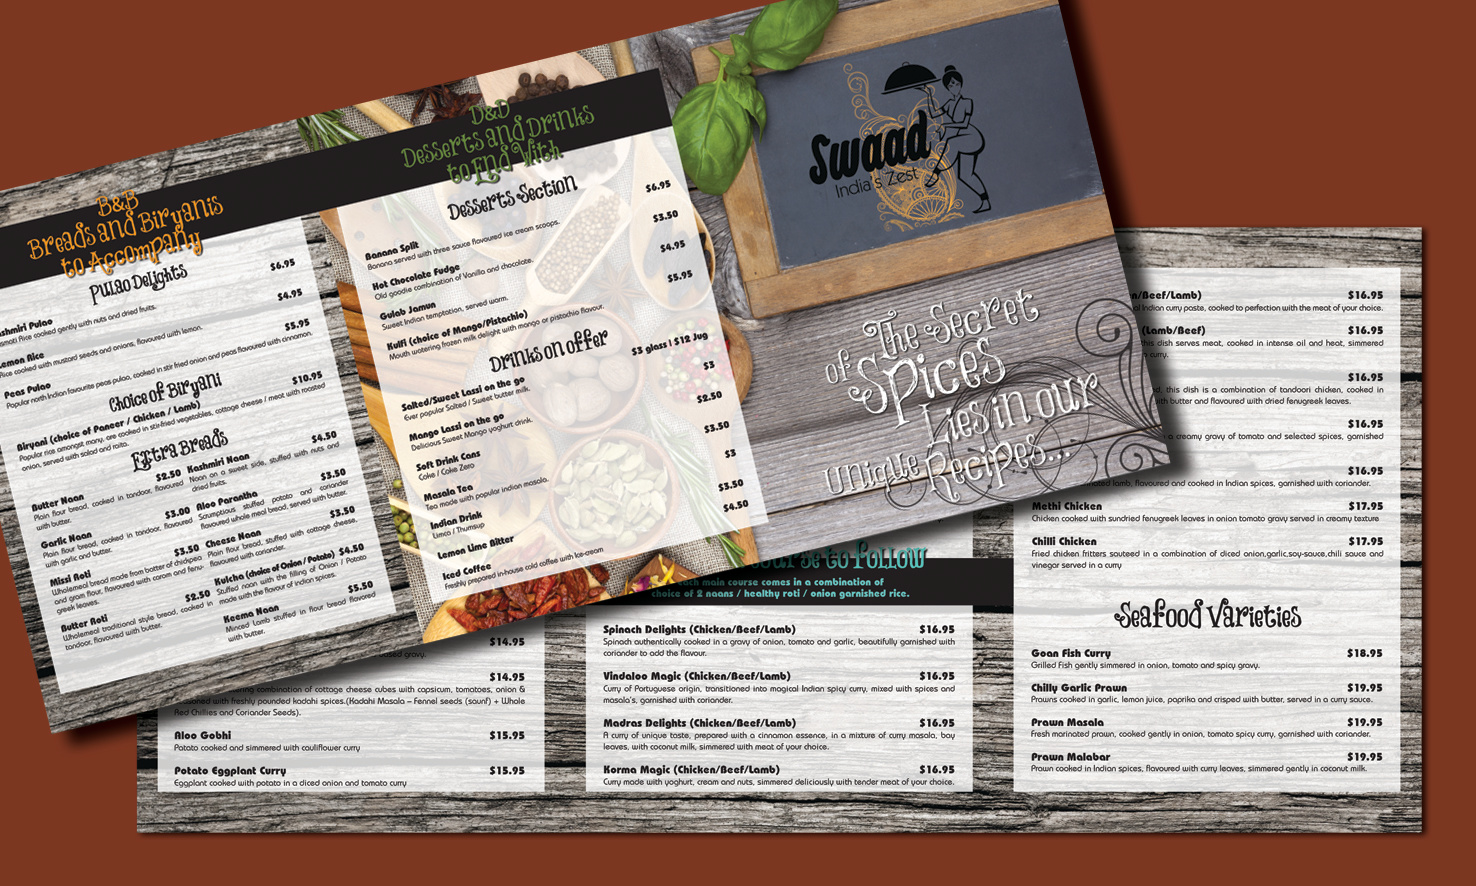 Restaurant Menu A4 size 6 pages